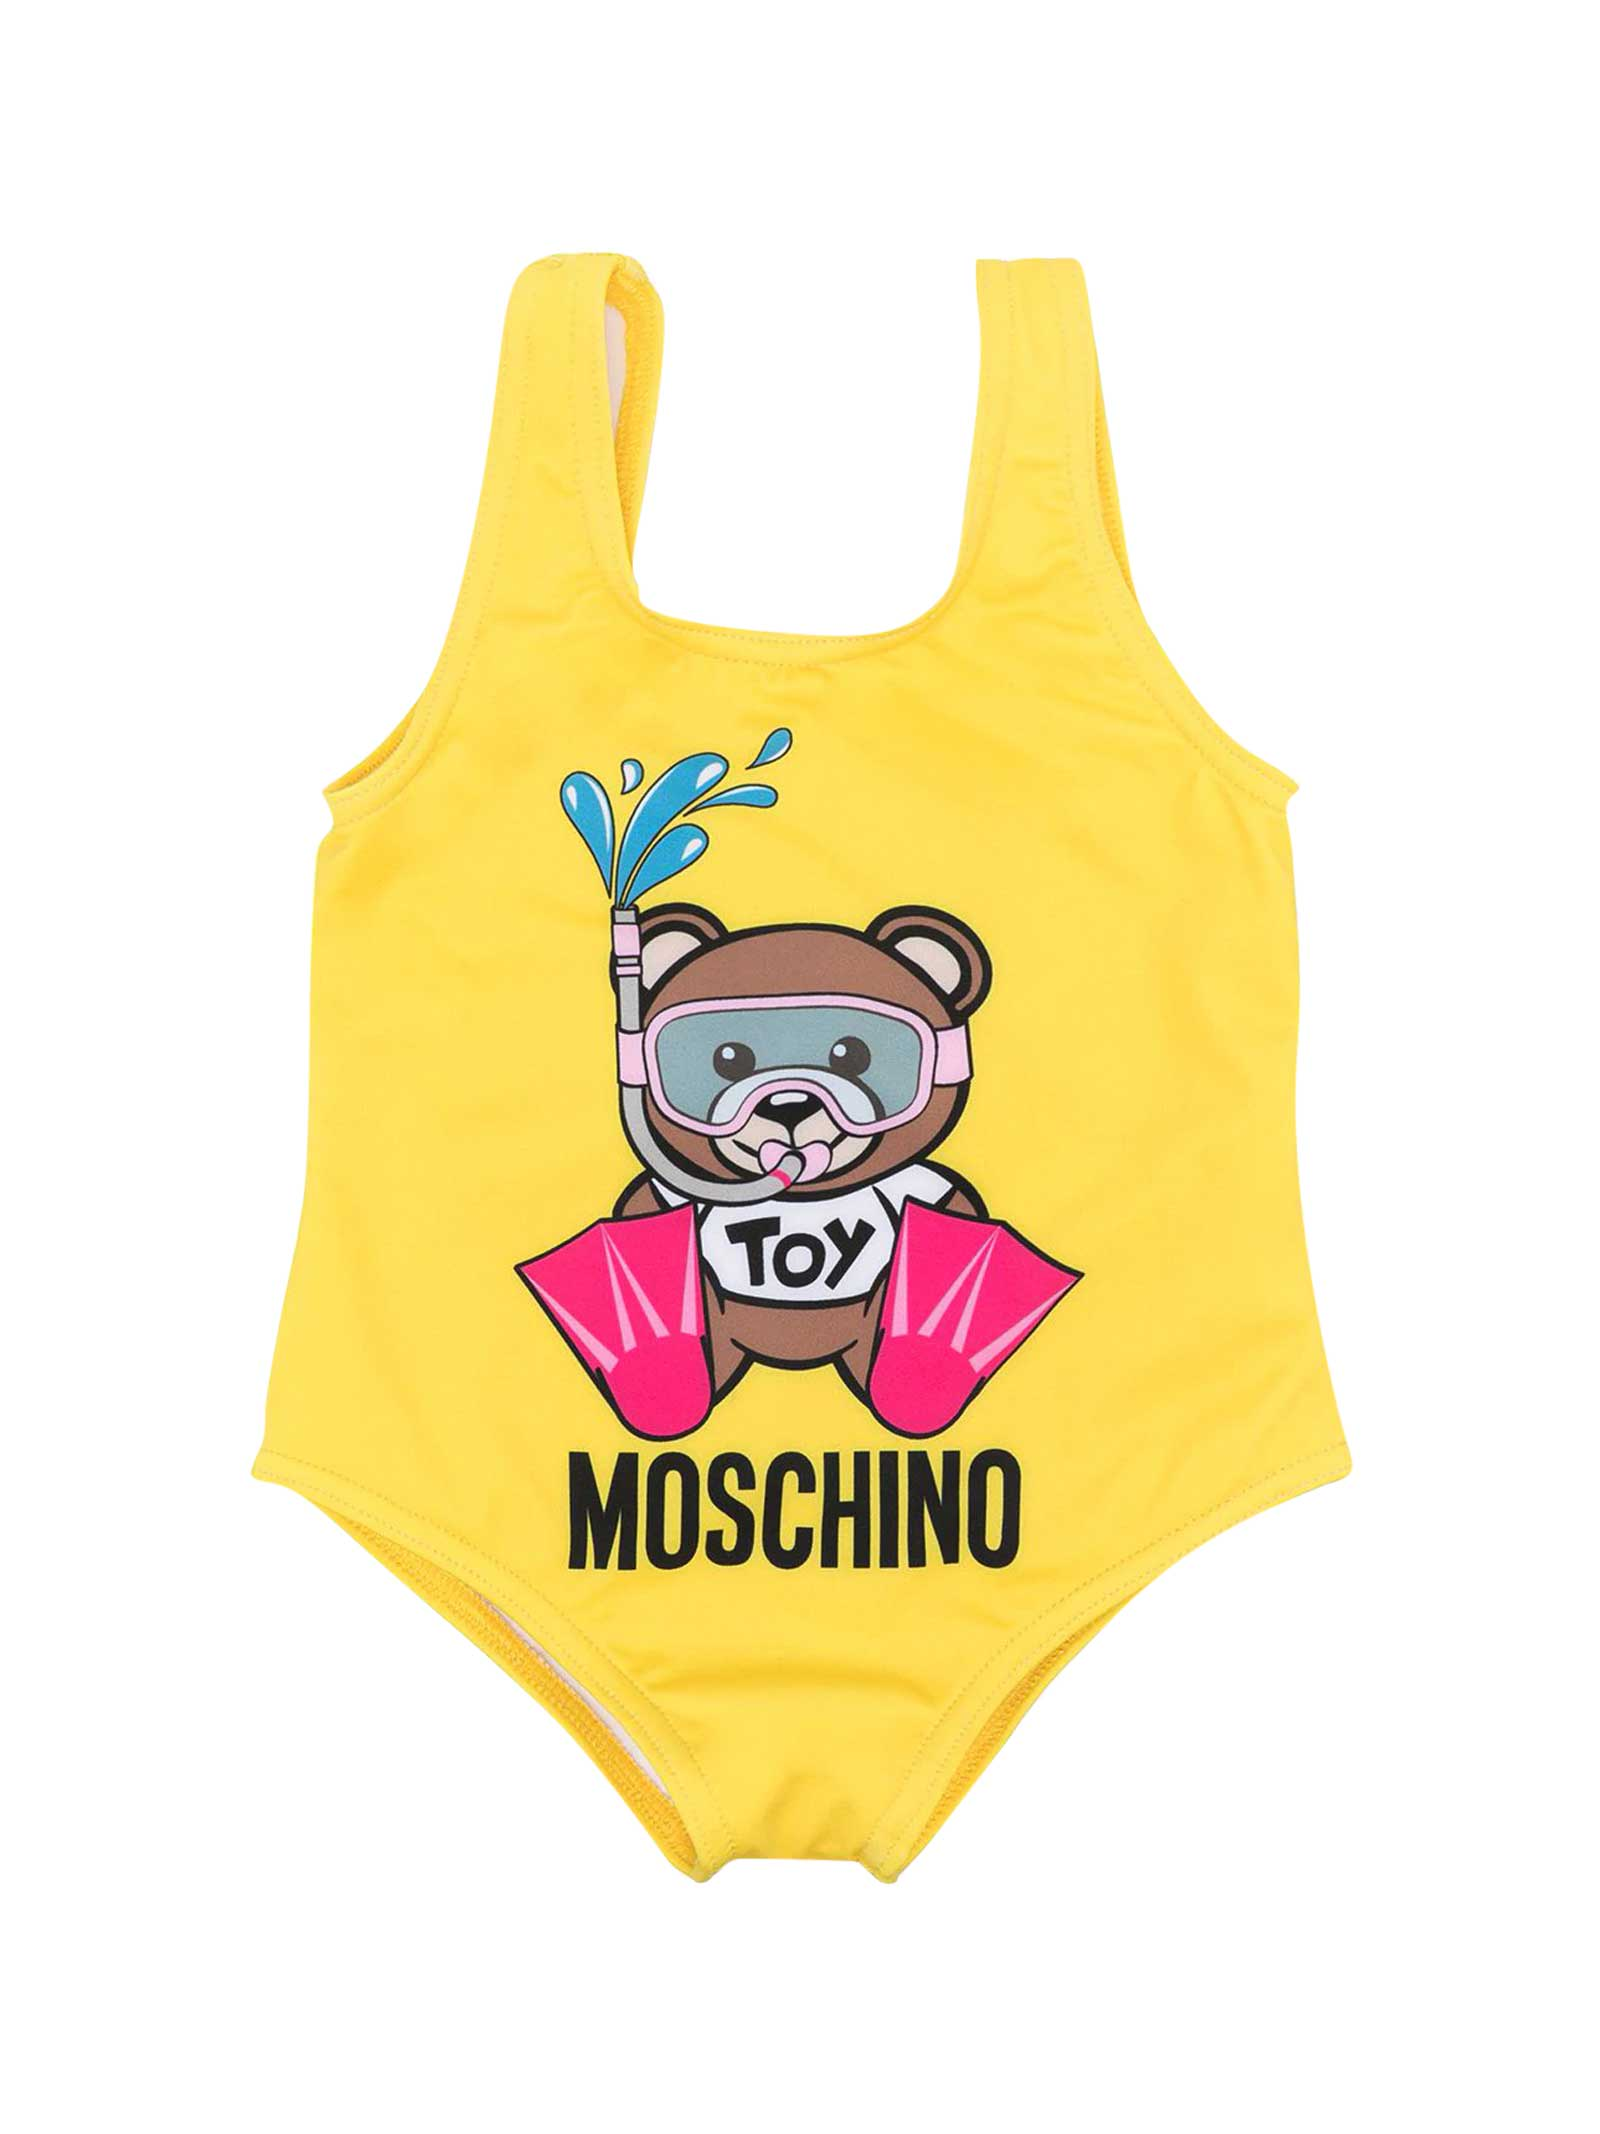 Moschino Yellow One-piece Swimsuit